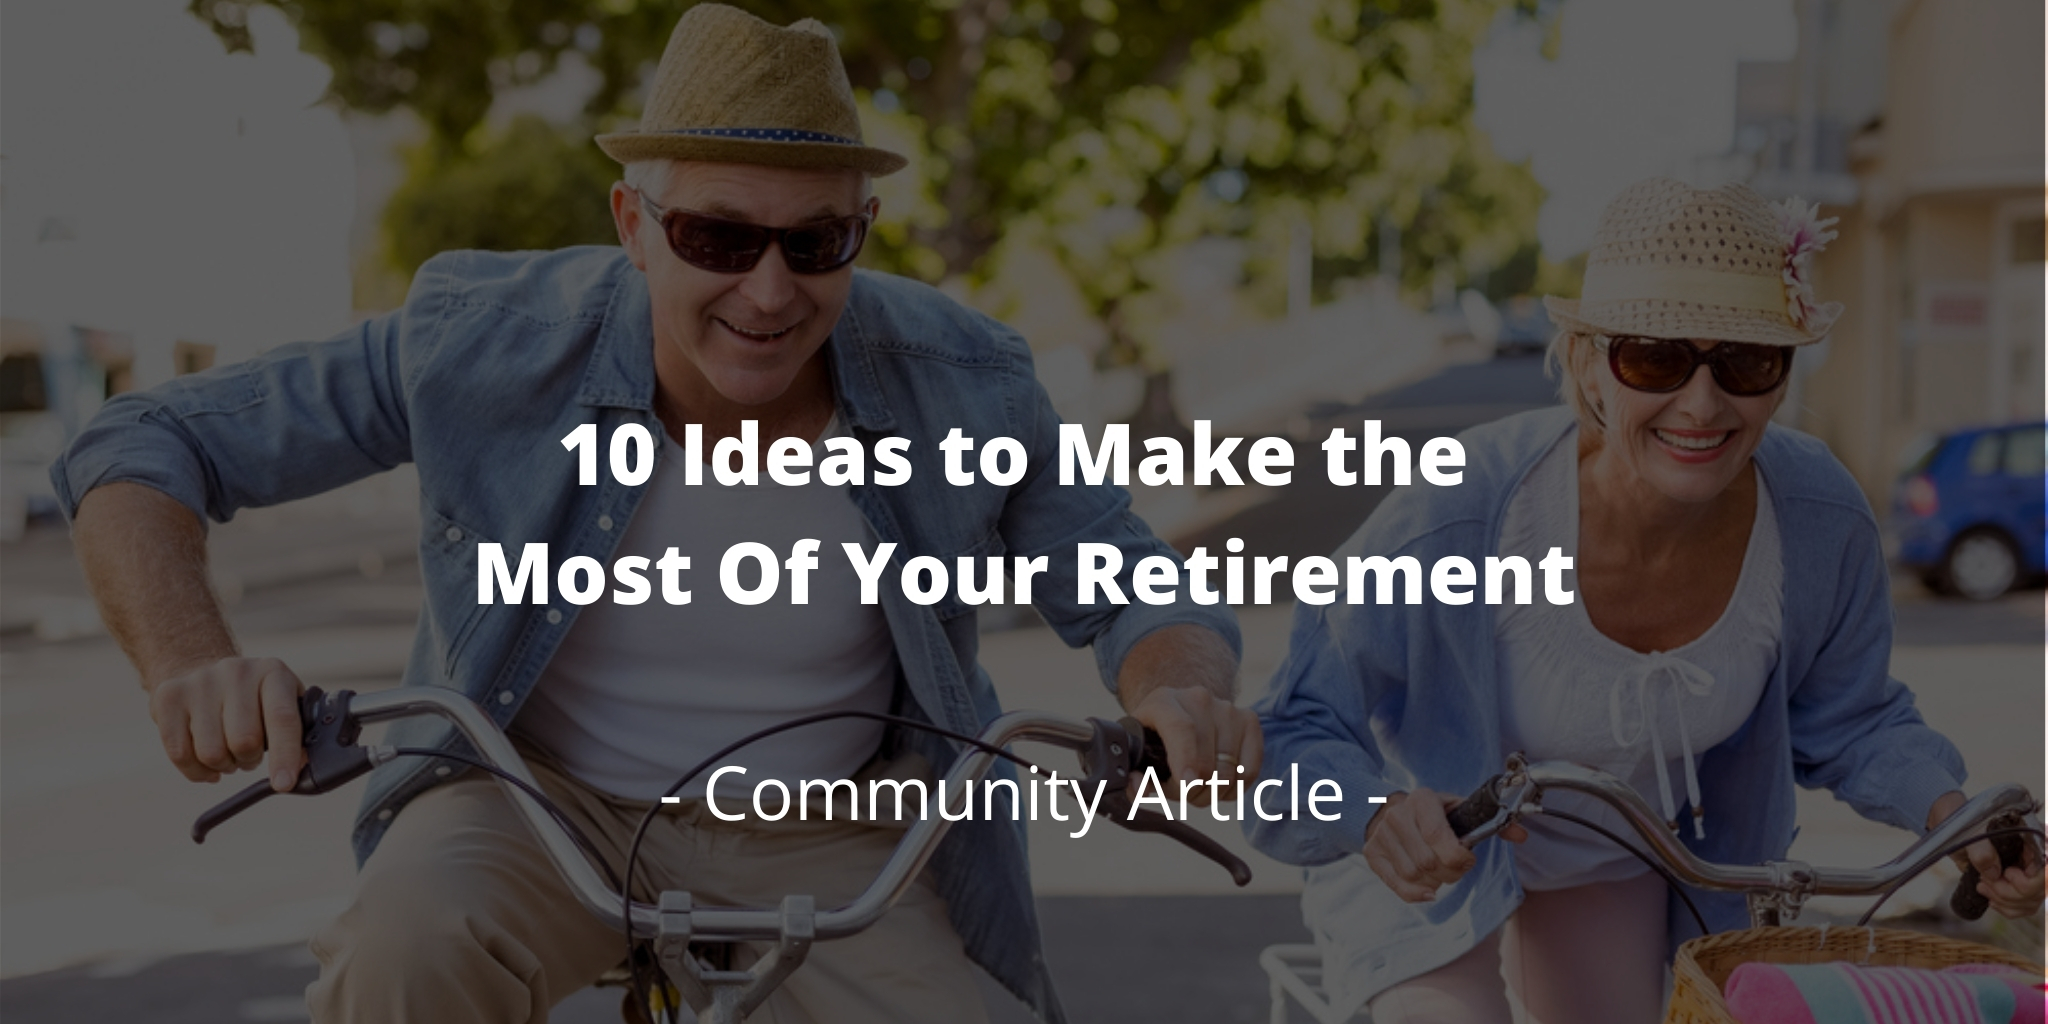 10 Ideas to Make the Most Of Your Retirement